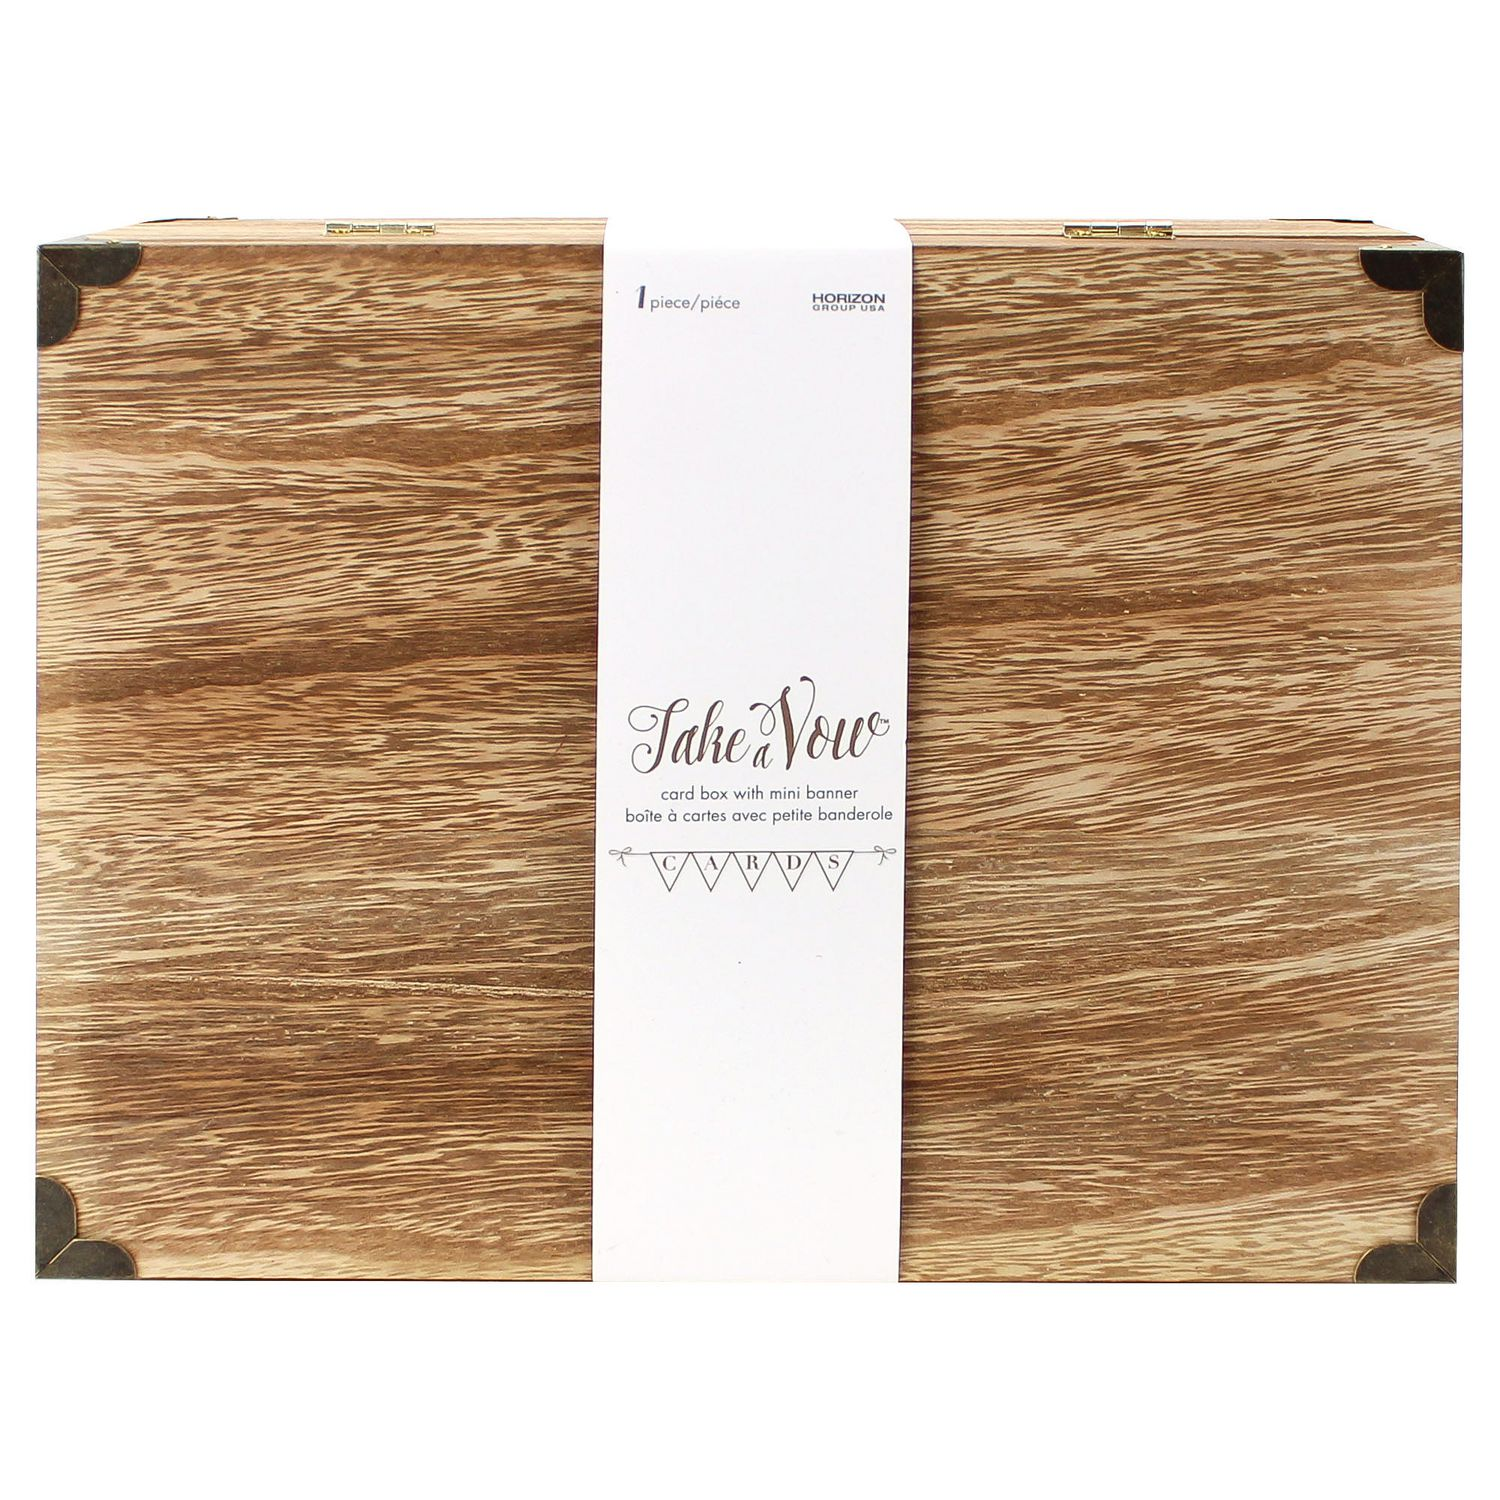 Wedding Gifts At Walmart: Take A Vow Wedding Gift Cards Box With Mini Banner